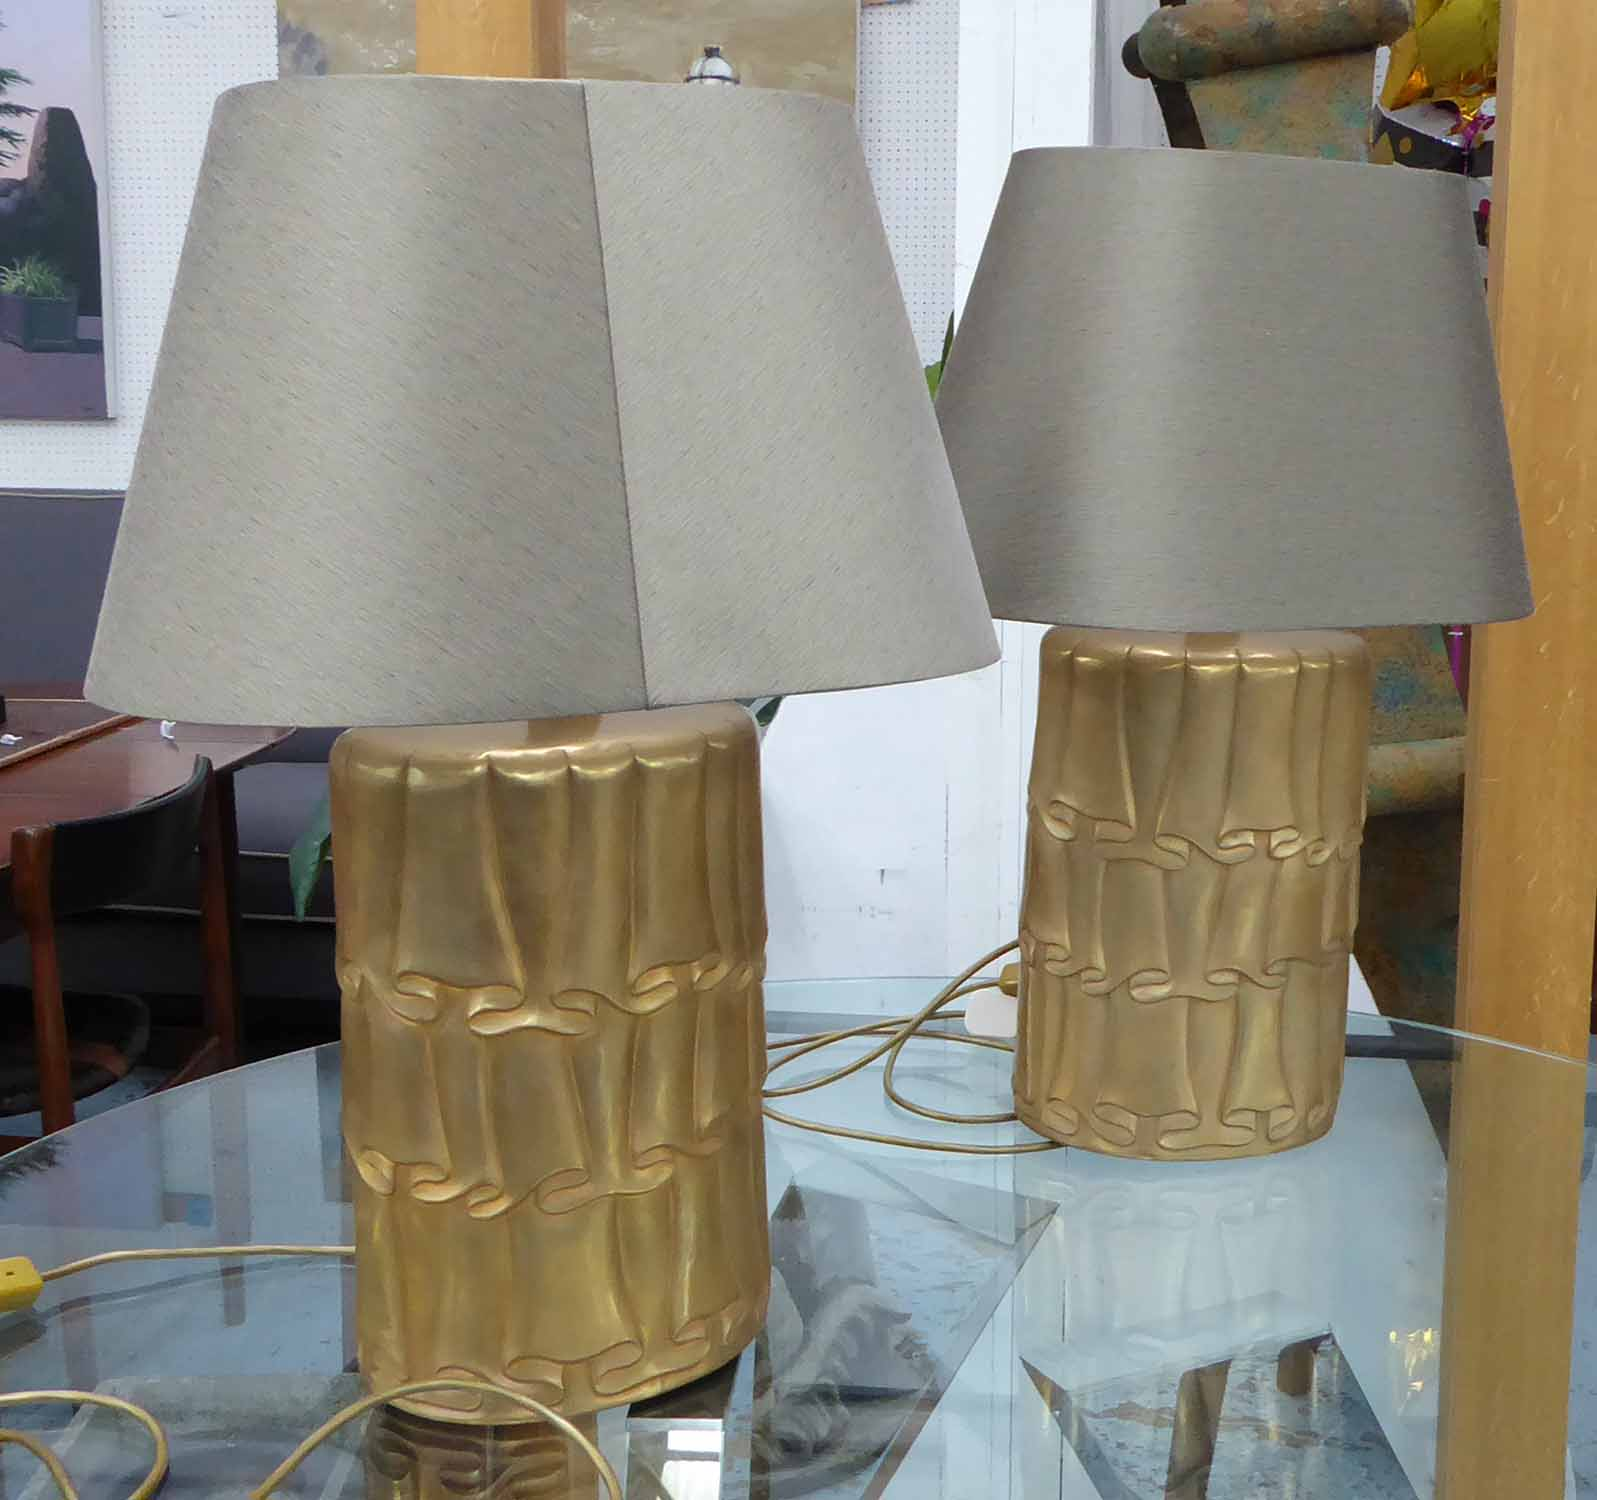 Lot 49 - SIDE LAMPS, a pair, with gilt metal bases with a swagged design, 71cm H including shade.